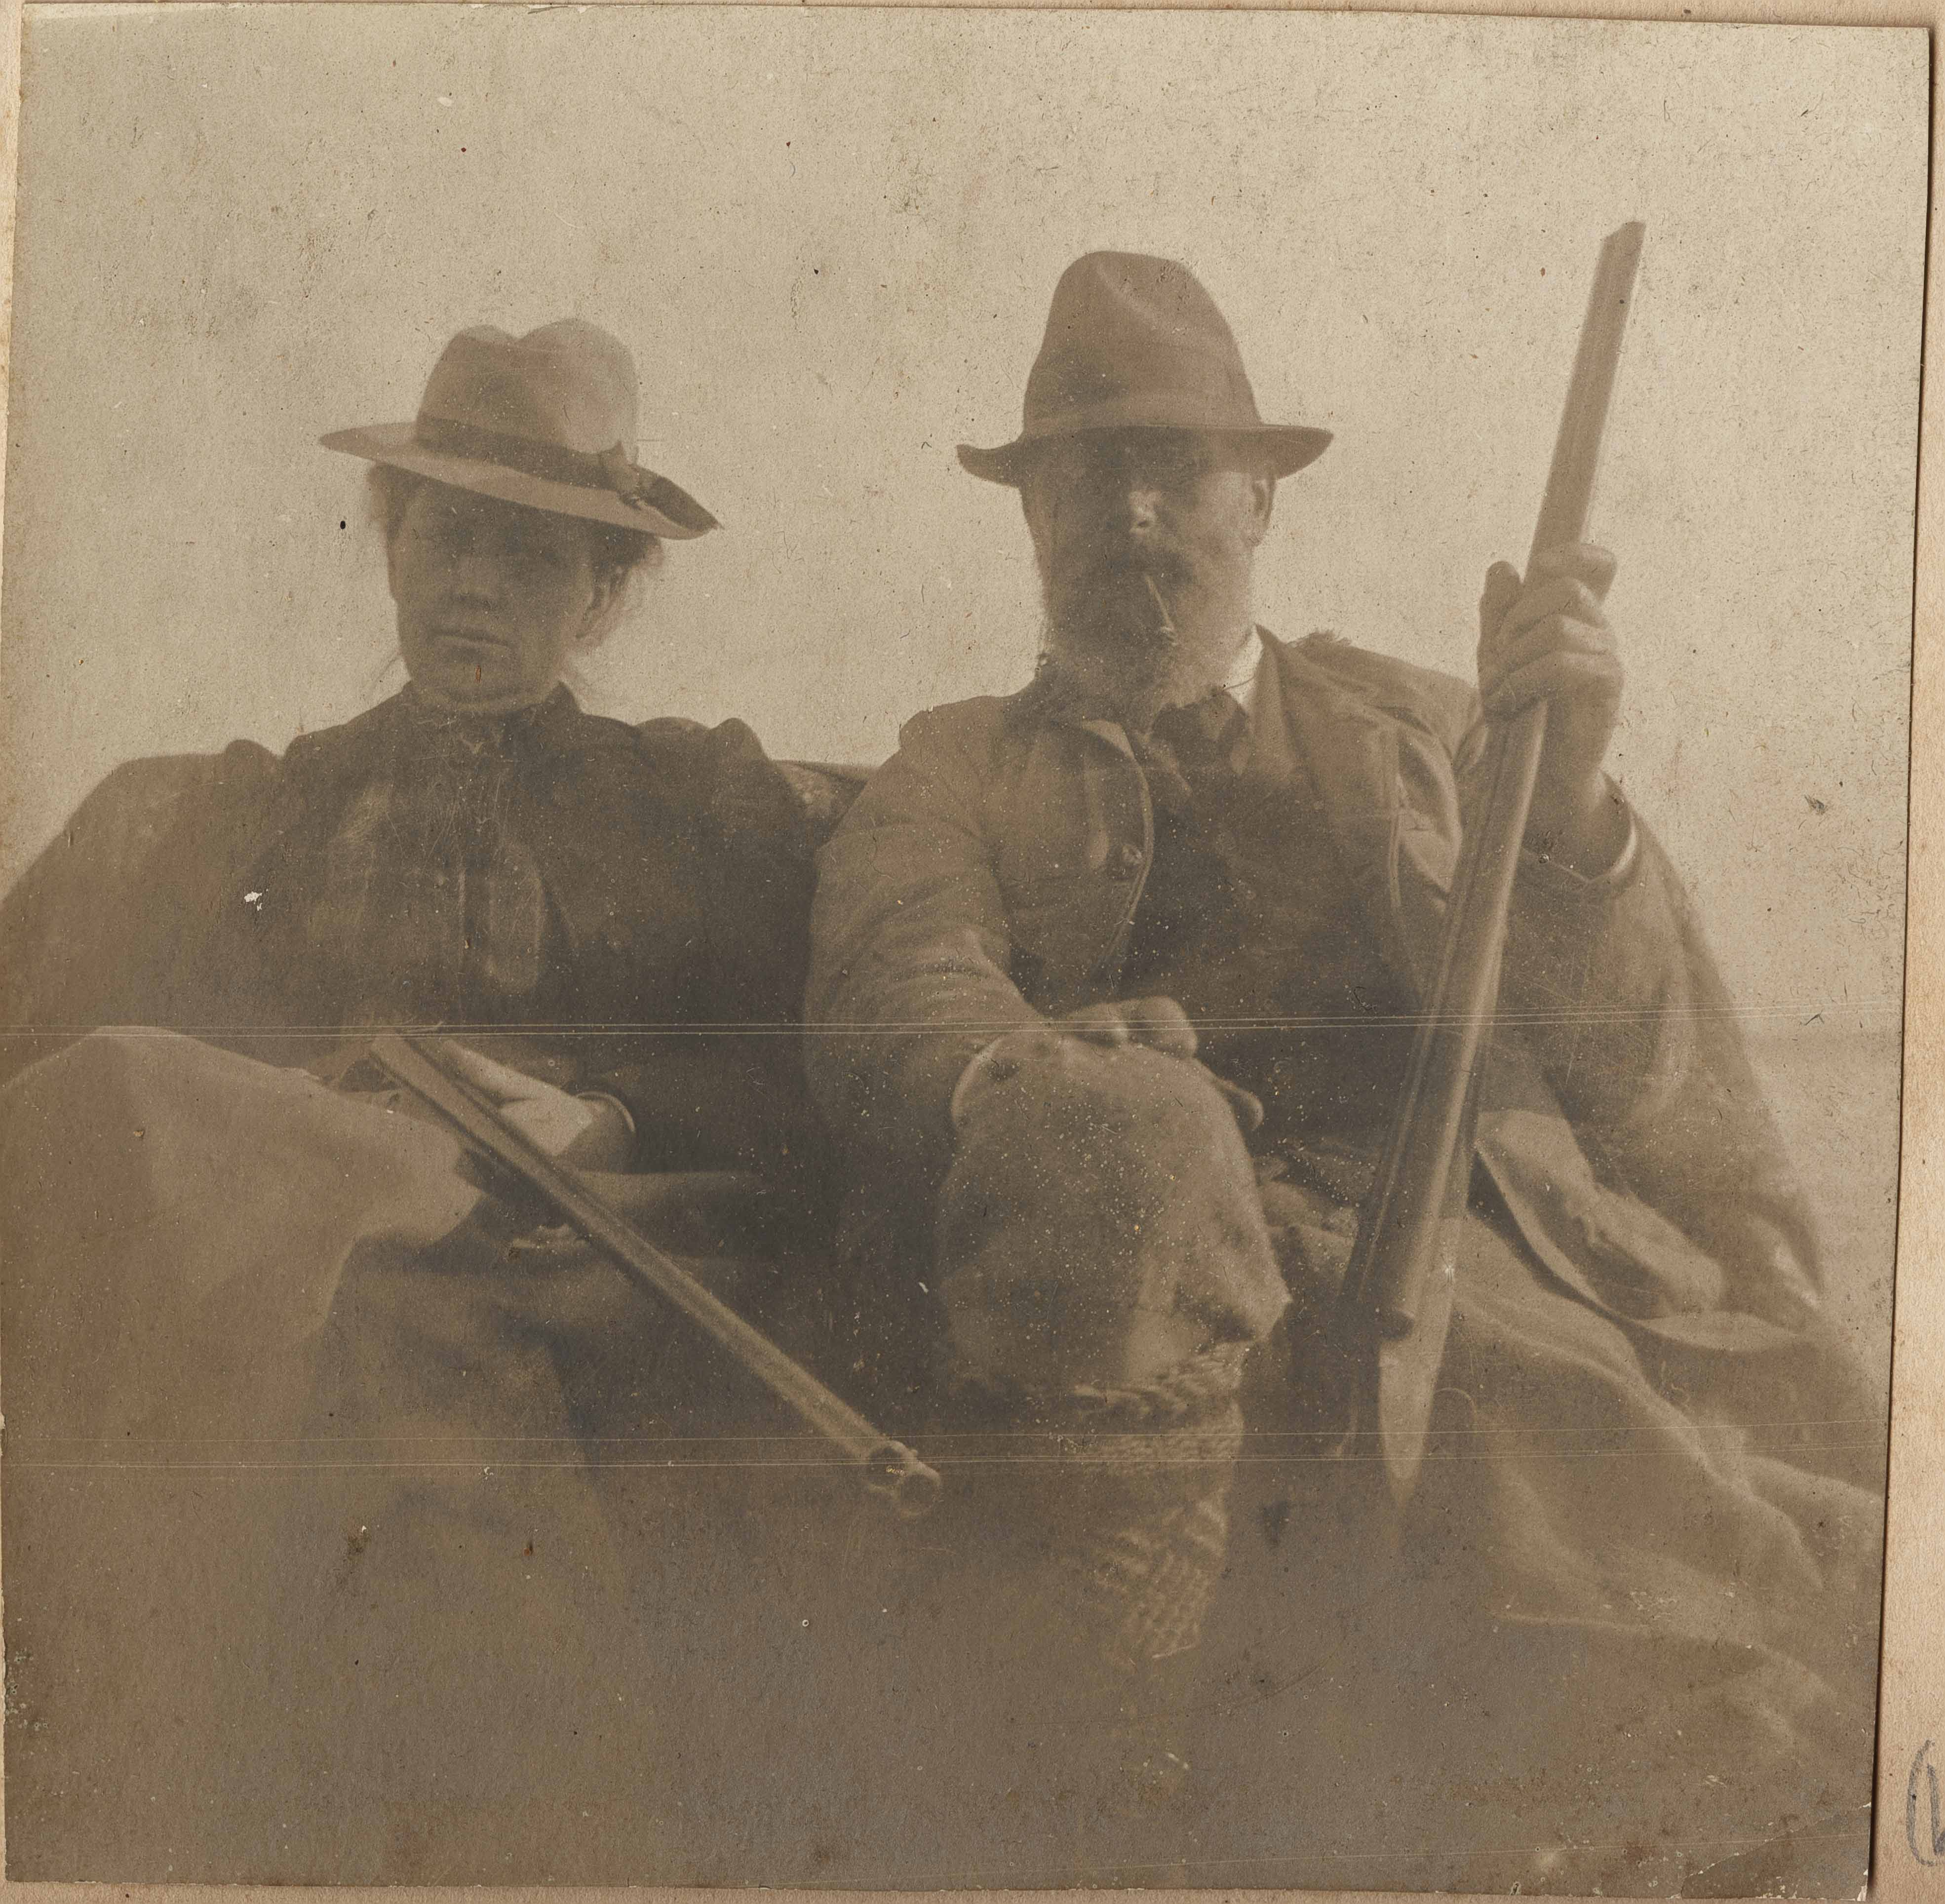 Pauline Donner and Conrad Donner with hunting guns